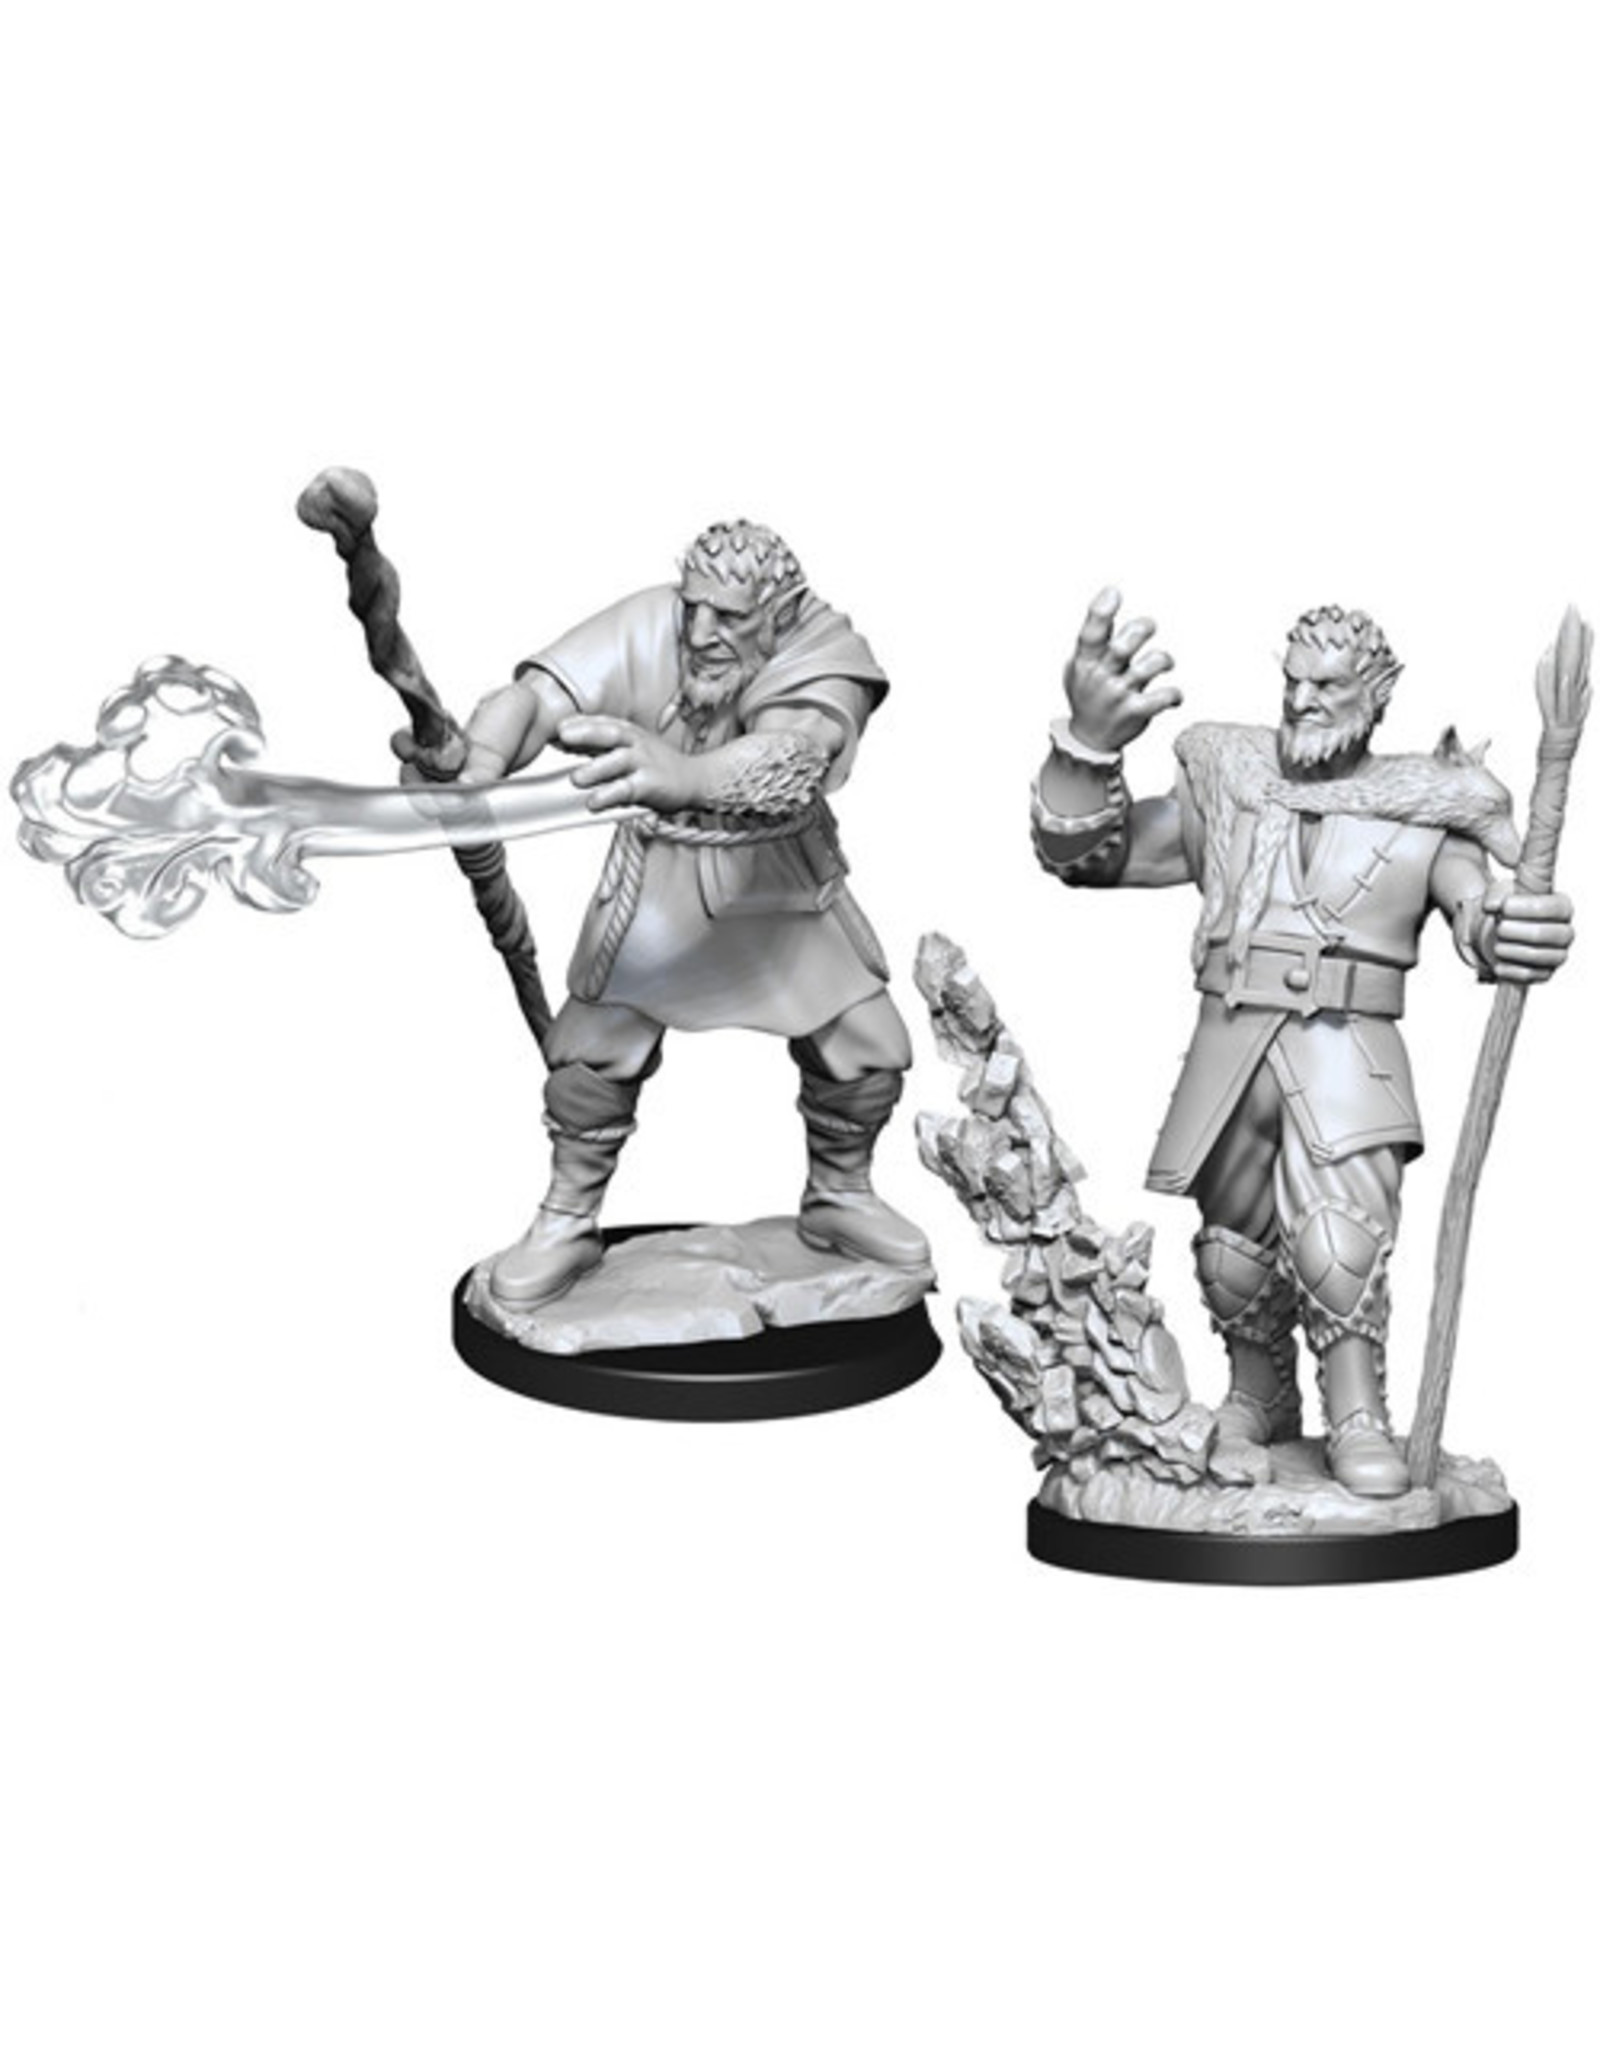 WIZARDS OF THE COAST D&D NOLZURS MARVELOUS FIRBOLG DRUID